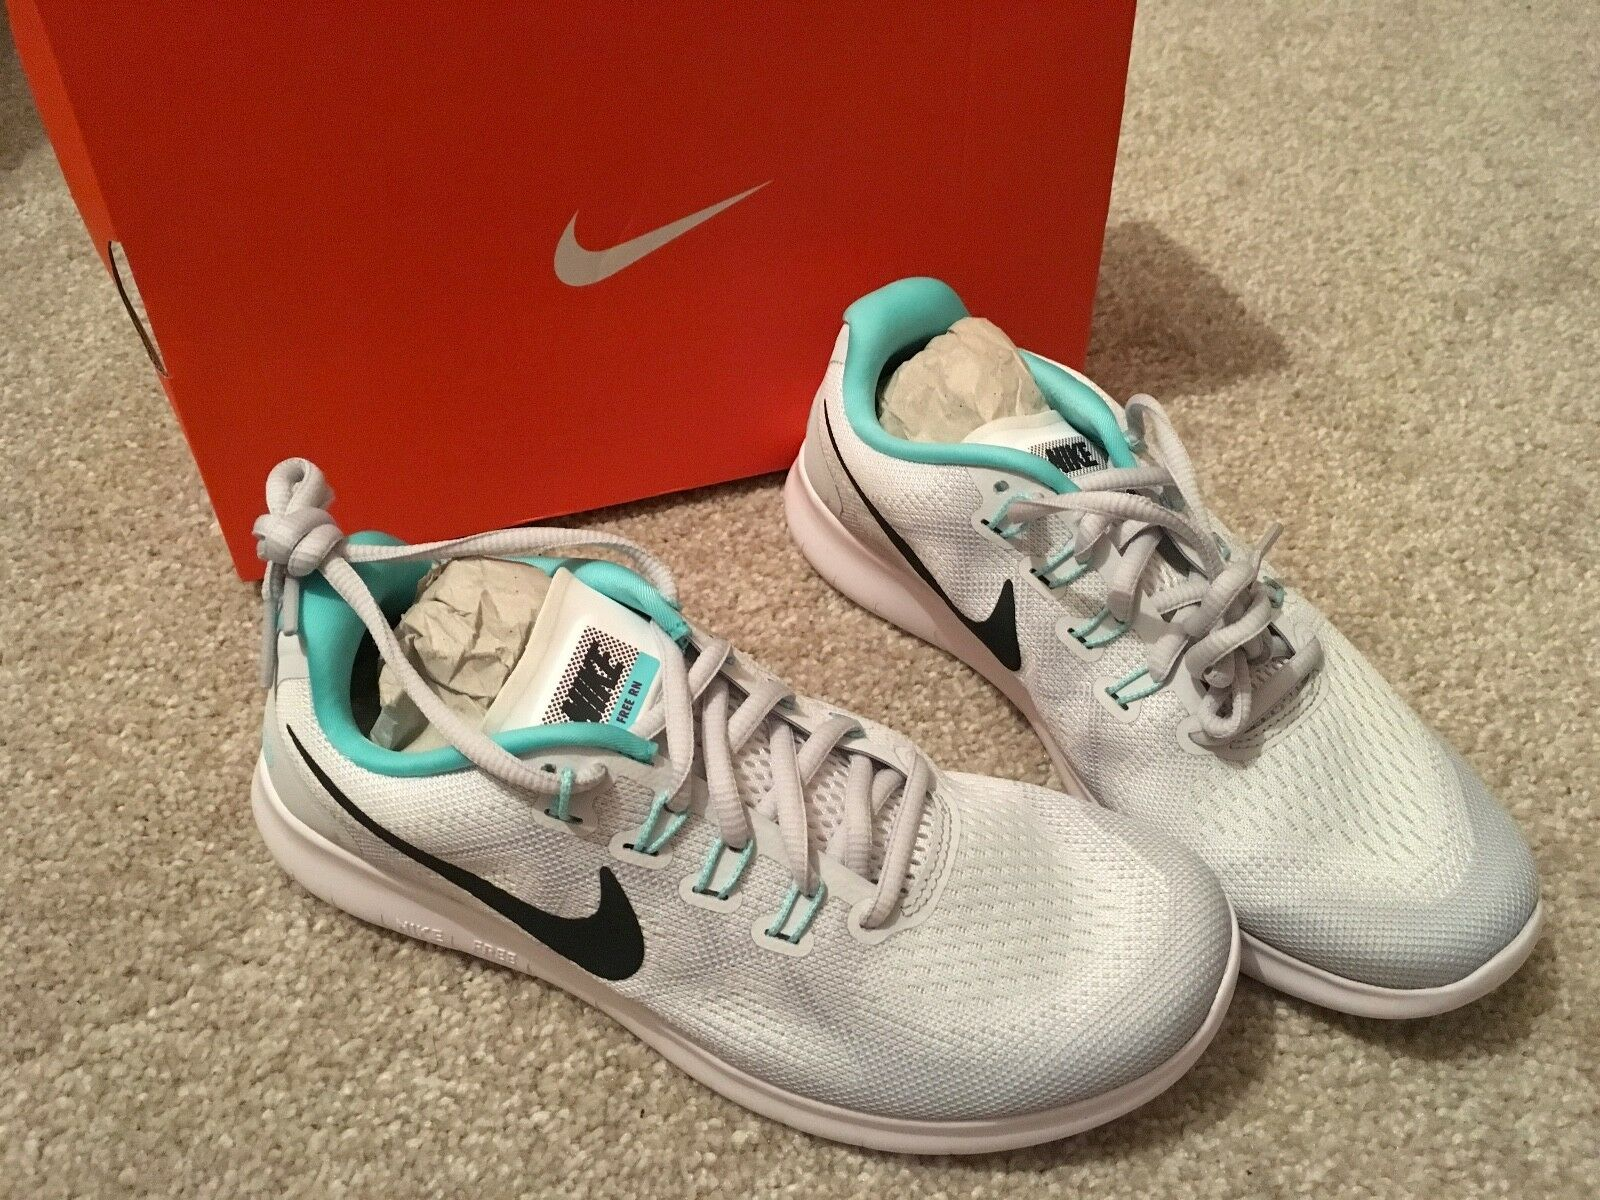 New Ladies NIKE White and mint Green Soorts shoes Size